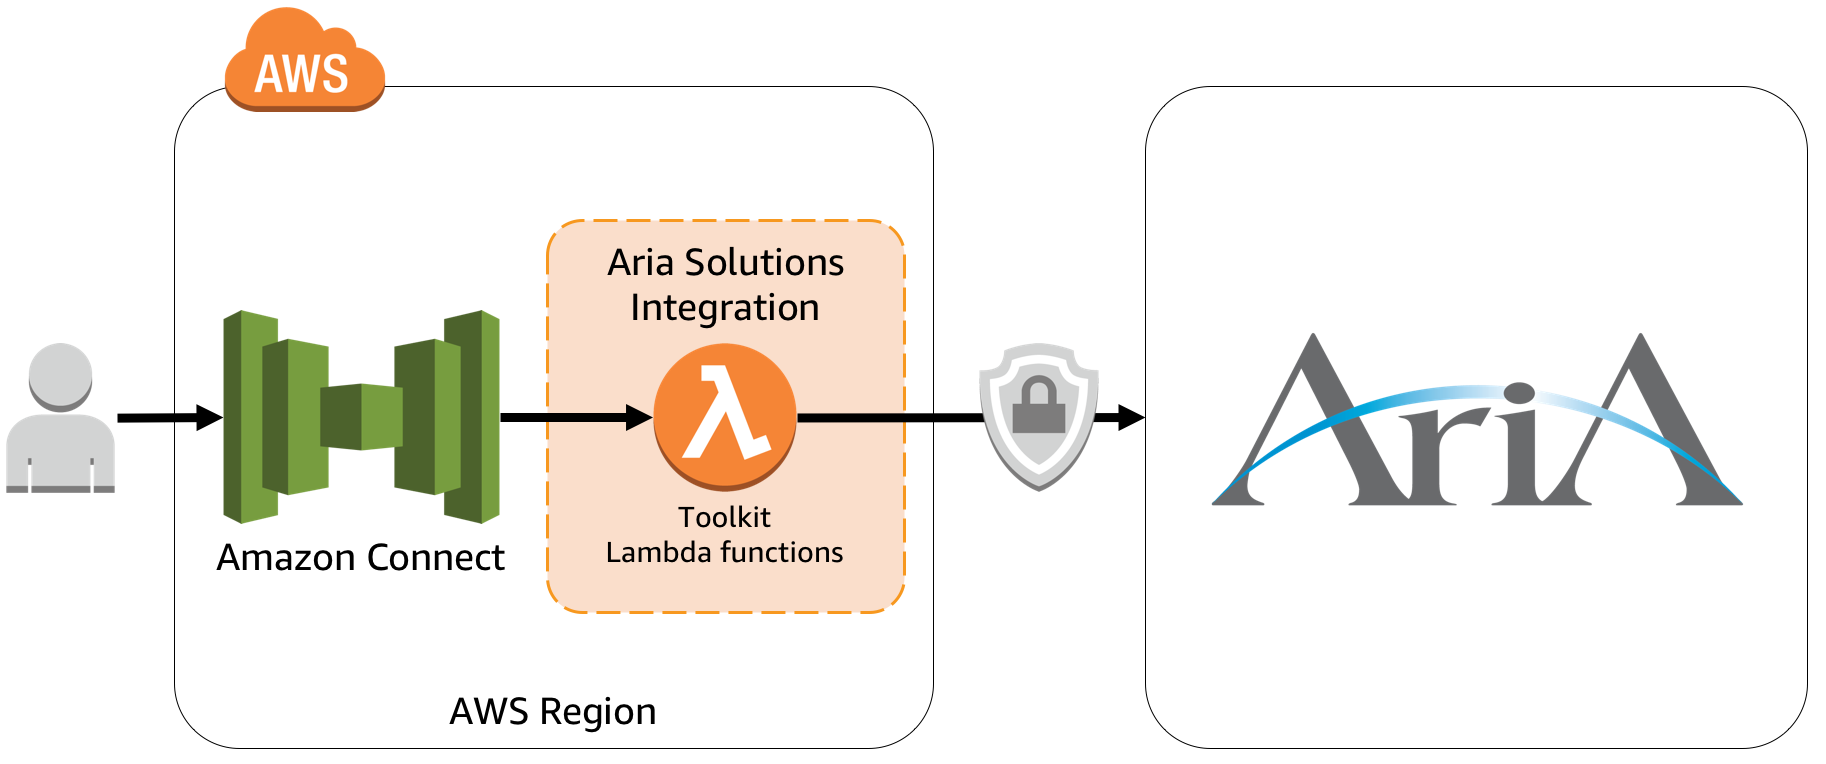 Aria Solutions Toolkit - Amazon Connect integration